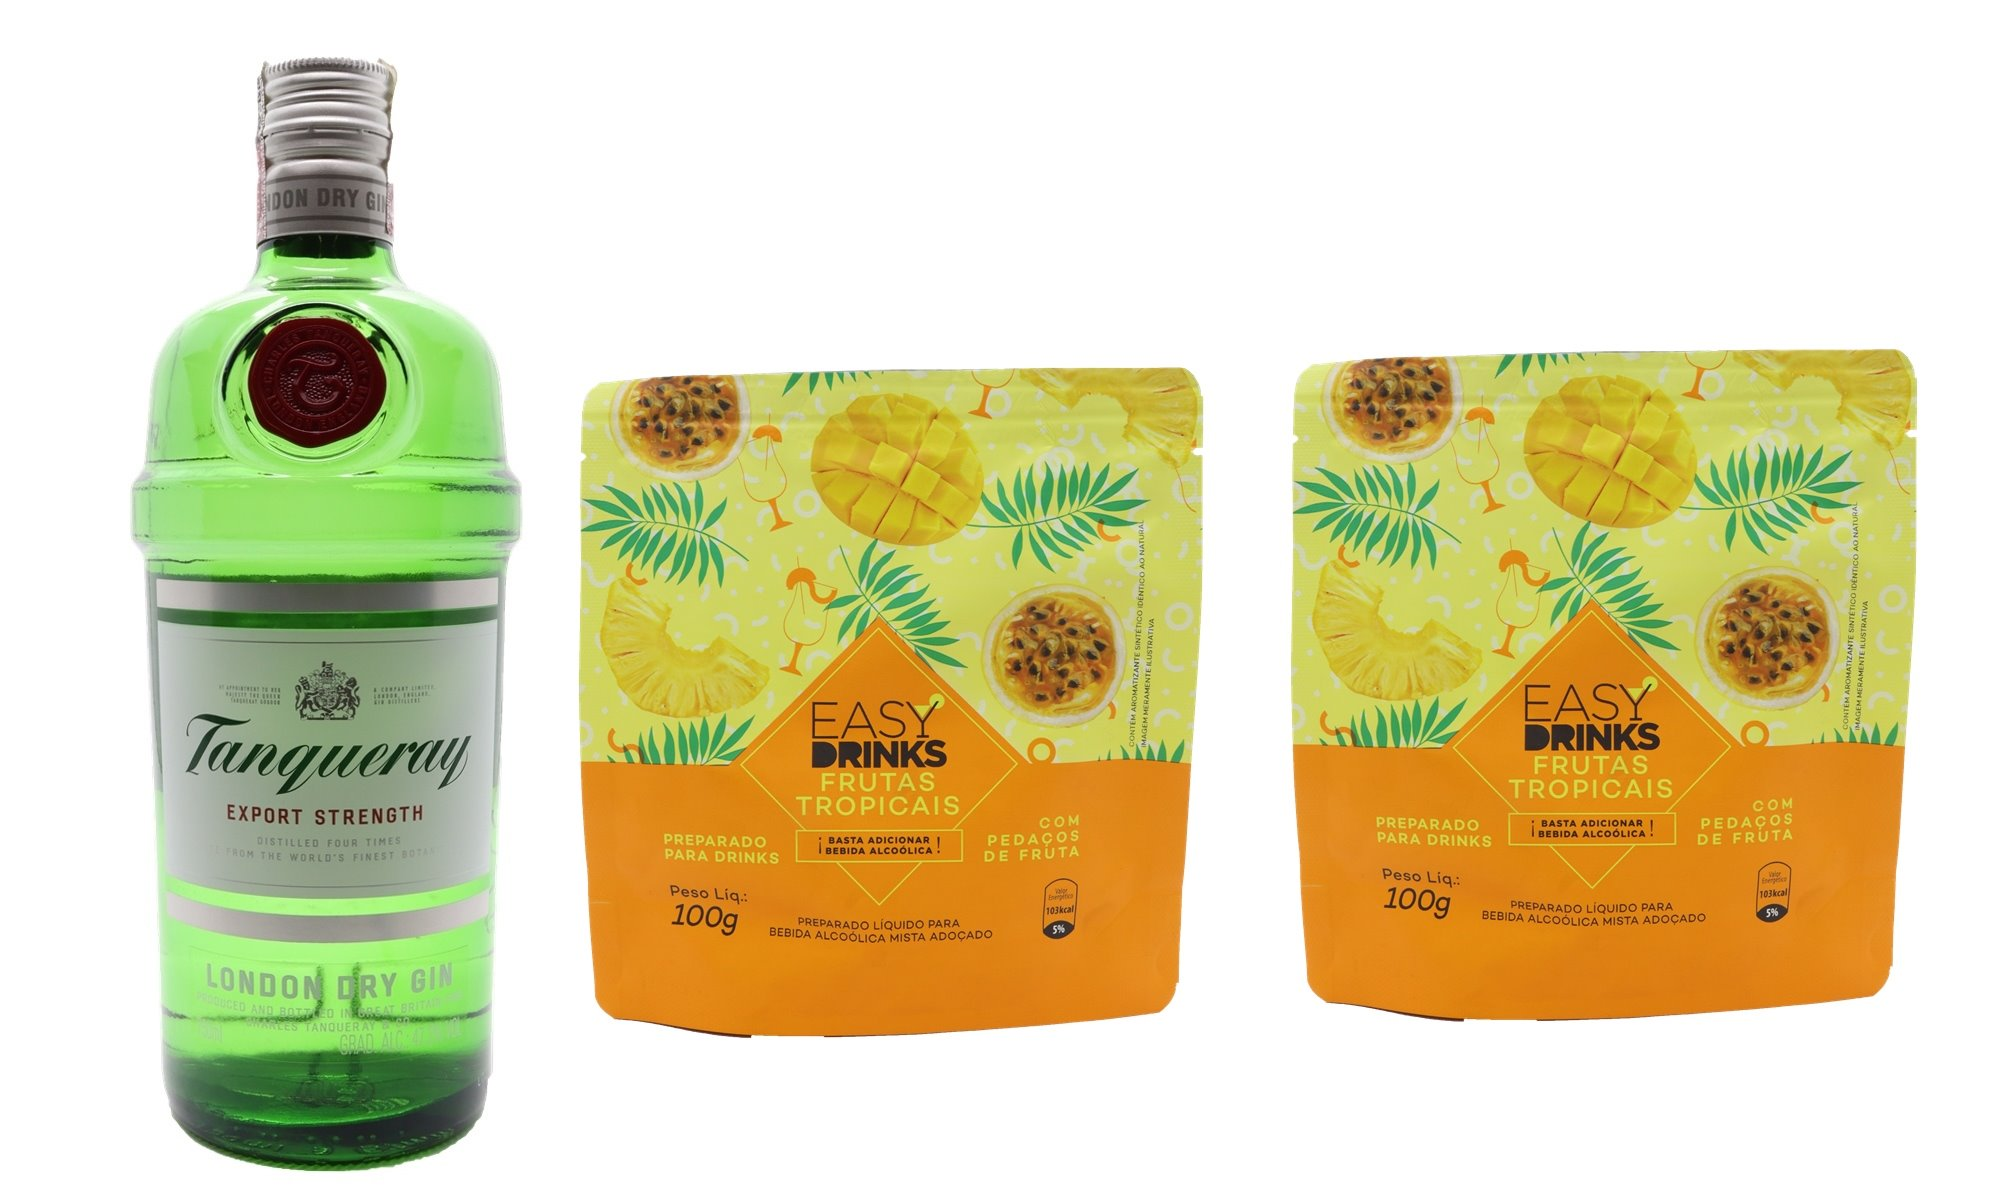 GIN TANQUERAY + 2 PACKS FRUTAS TROPICAIS EASY DRINK'S